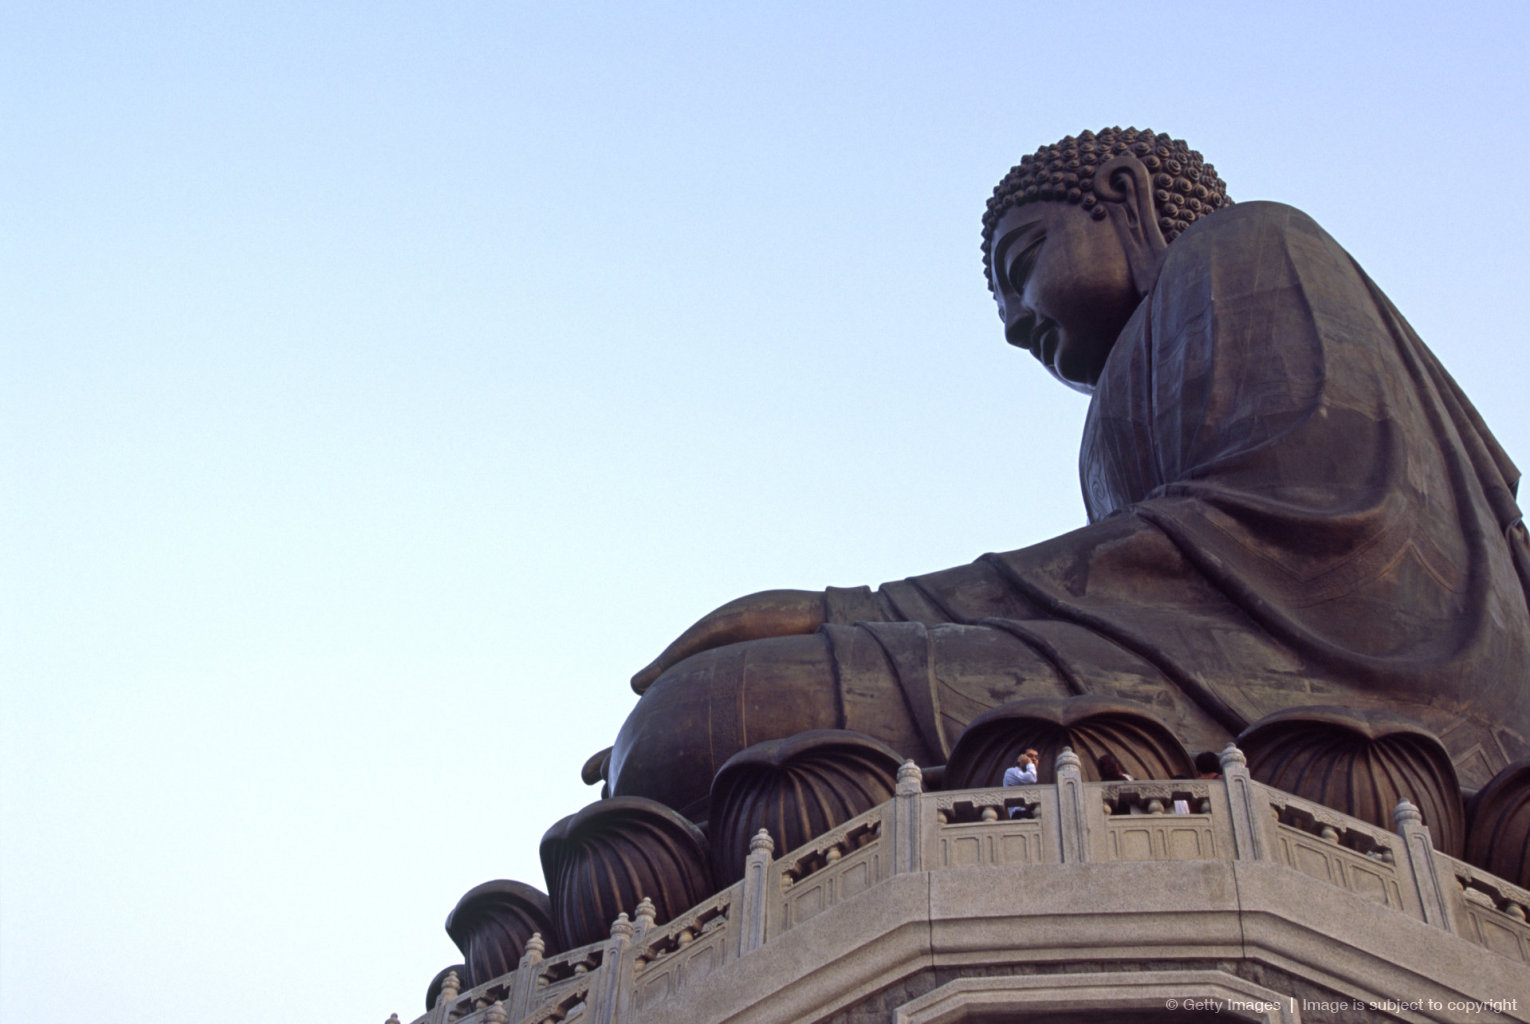 China, Lantau Island, Ngong Ping. A pilgrim is dwarfed by the giant Tian Tan Buddha, a bronze, seated representation of Lord Gautama, sitting above Ngong...